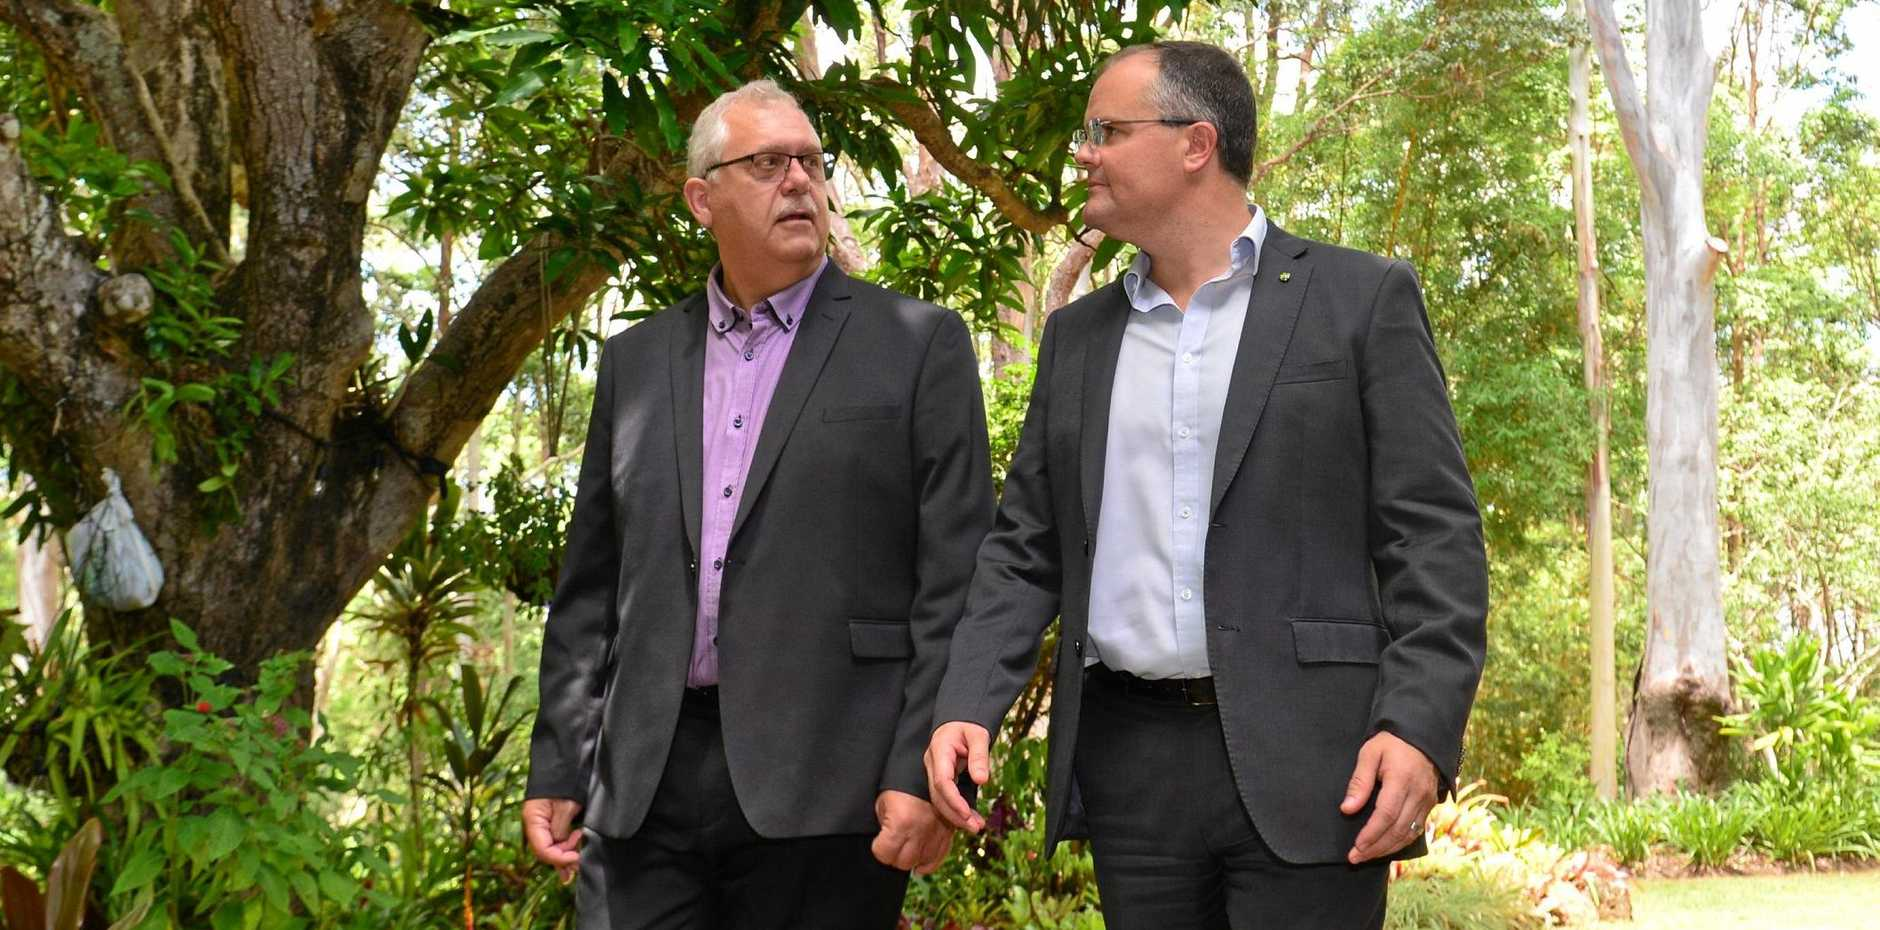 CALL FOR HELP: CEO Chris Franck and Ted O'Brien at Bloomhill Cancer Charity in Buderim discuss the need for funding to help the facility survive.